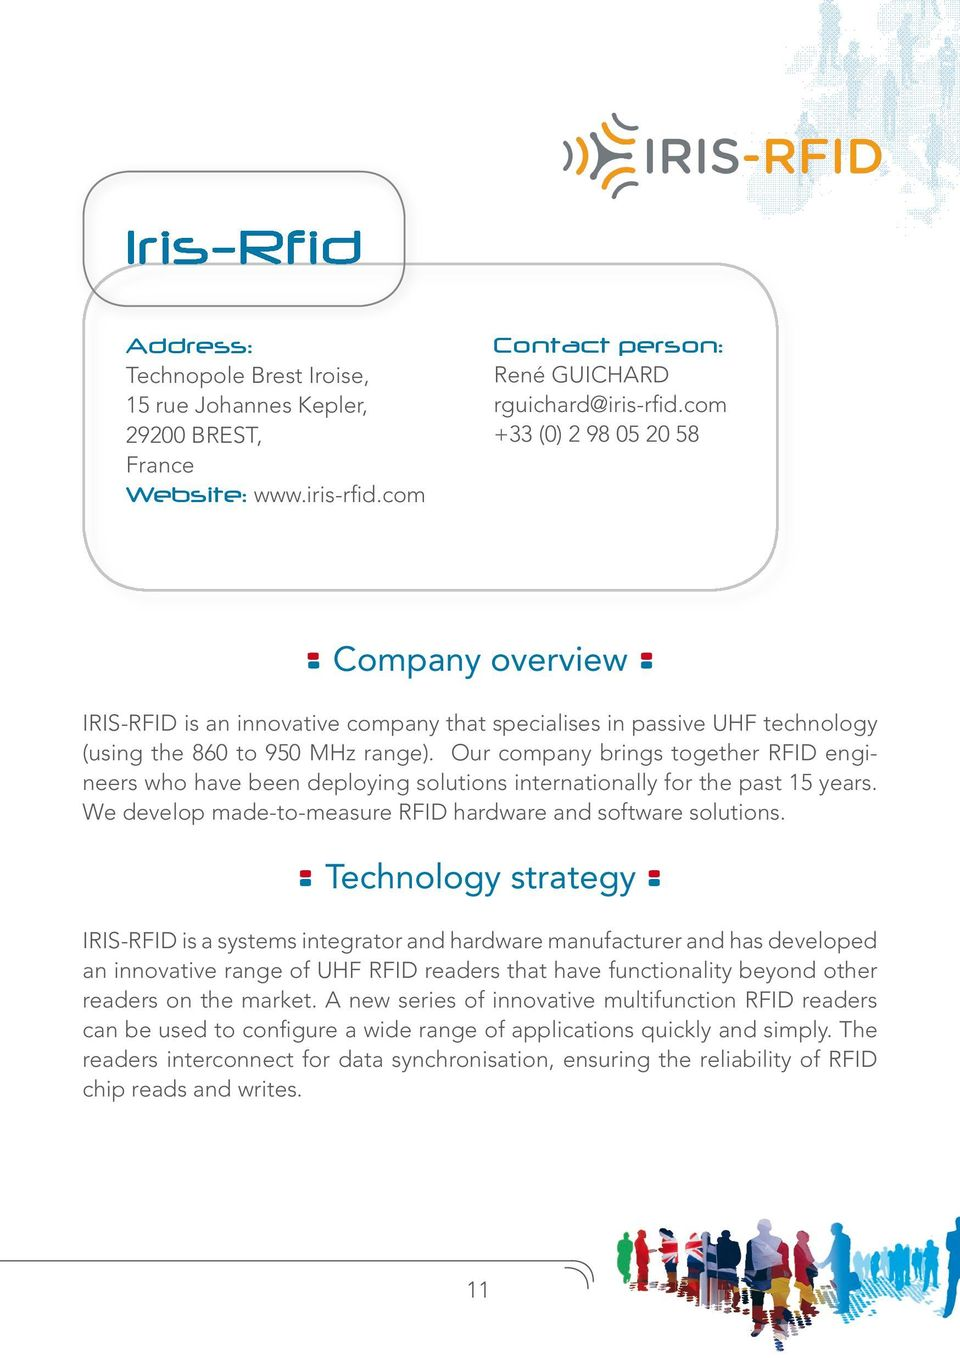 Our company brings together RFID engineers who have been deploying solutions internationally for the past 15 years. We develop made-to-measure RFID hardware and software solutions.